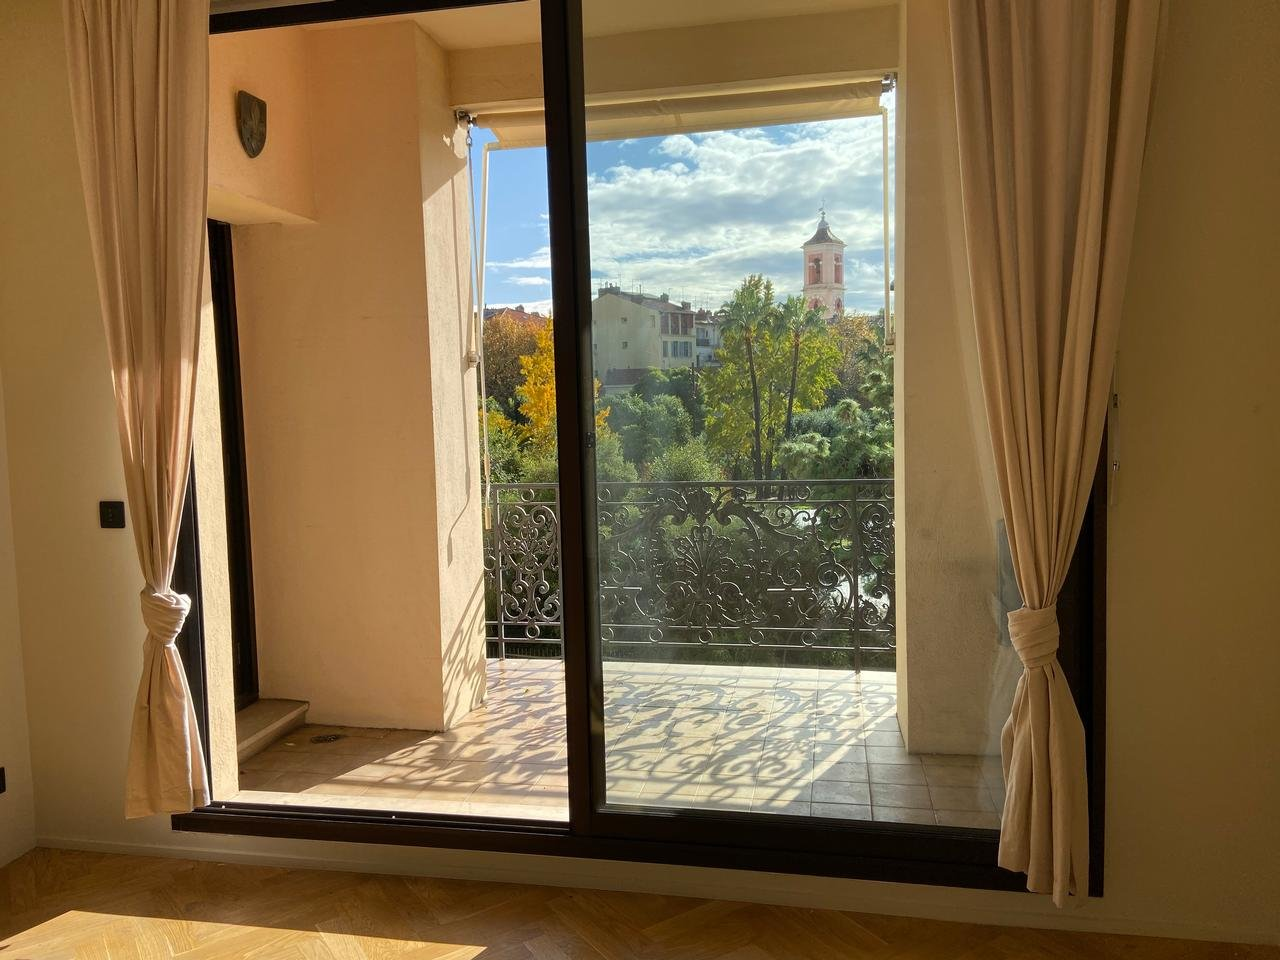 Apartment with views over Coulée Verte in Nice